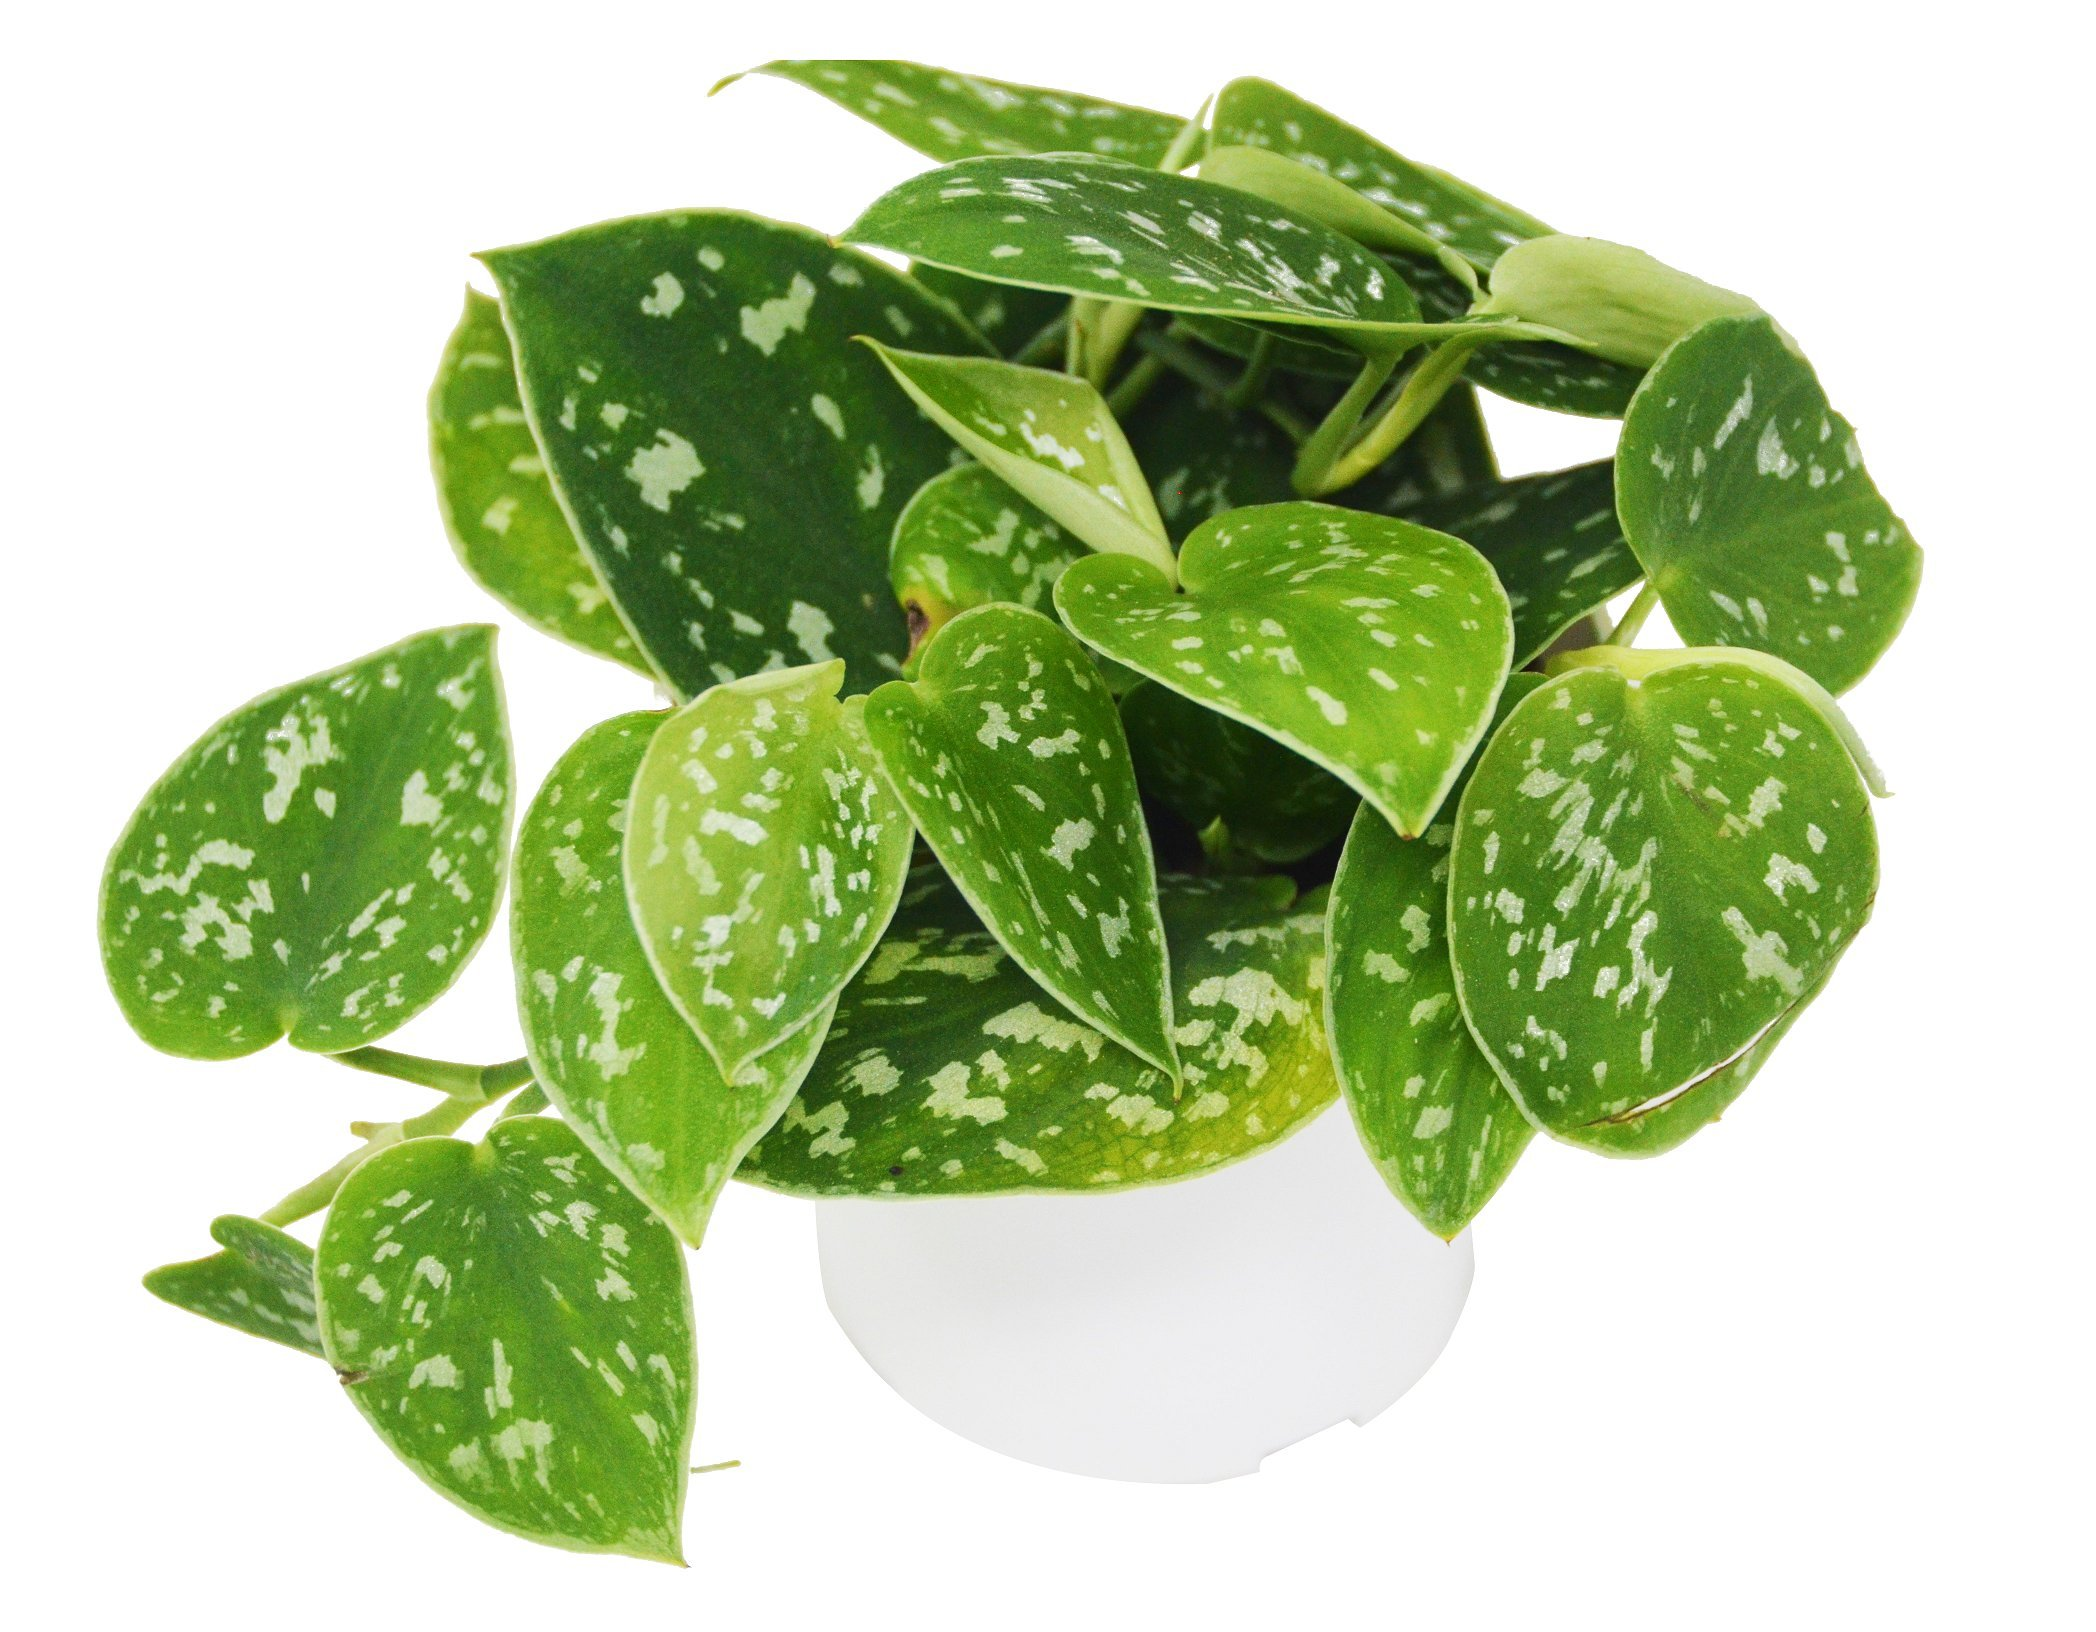 Pothos 'Satin' - Live Indoor House Plant - FREE Care Guide - 4'' Pot by House Plant Shop